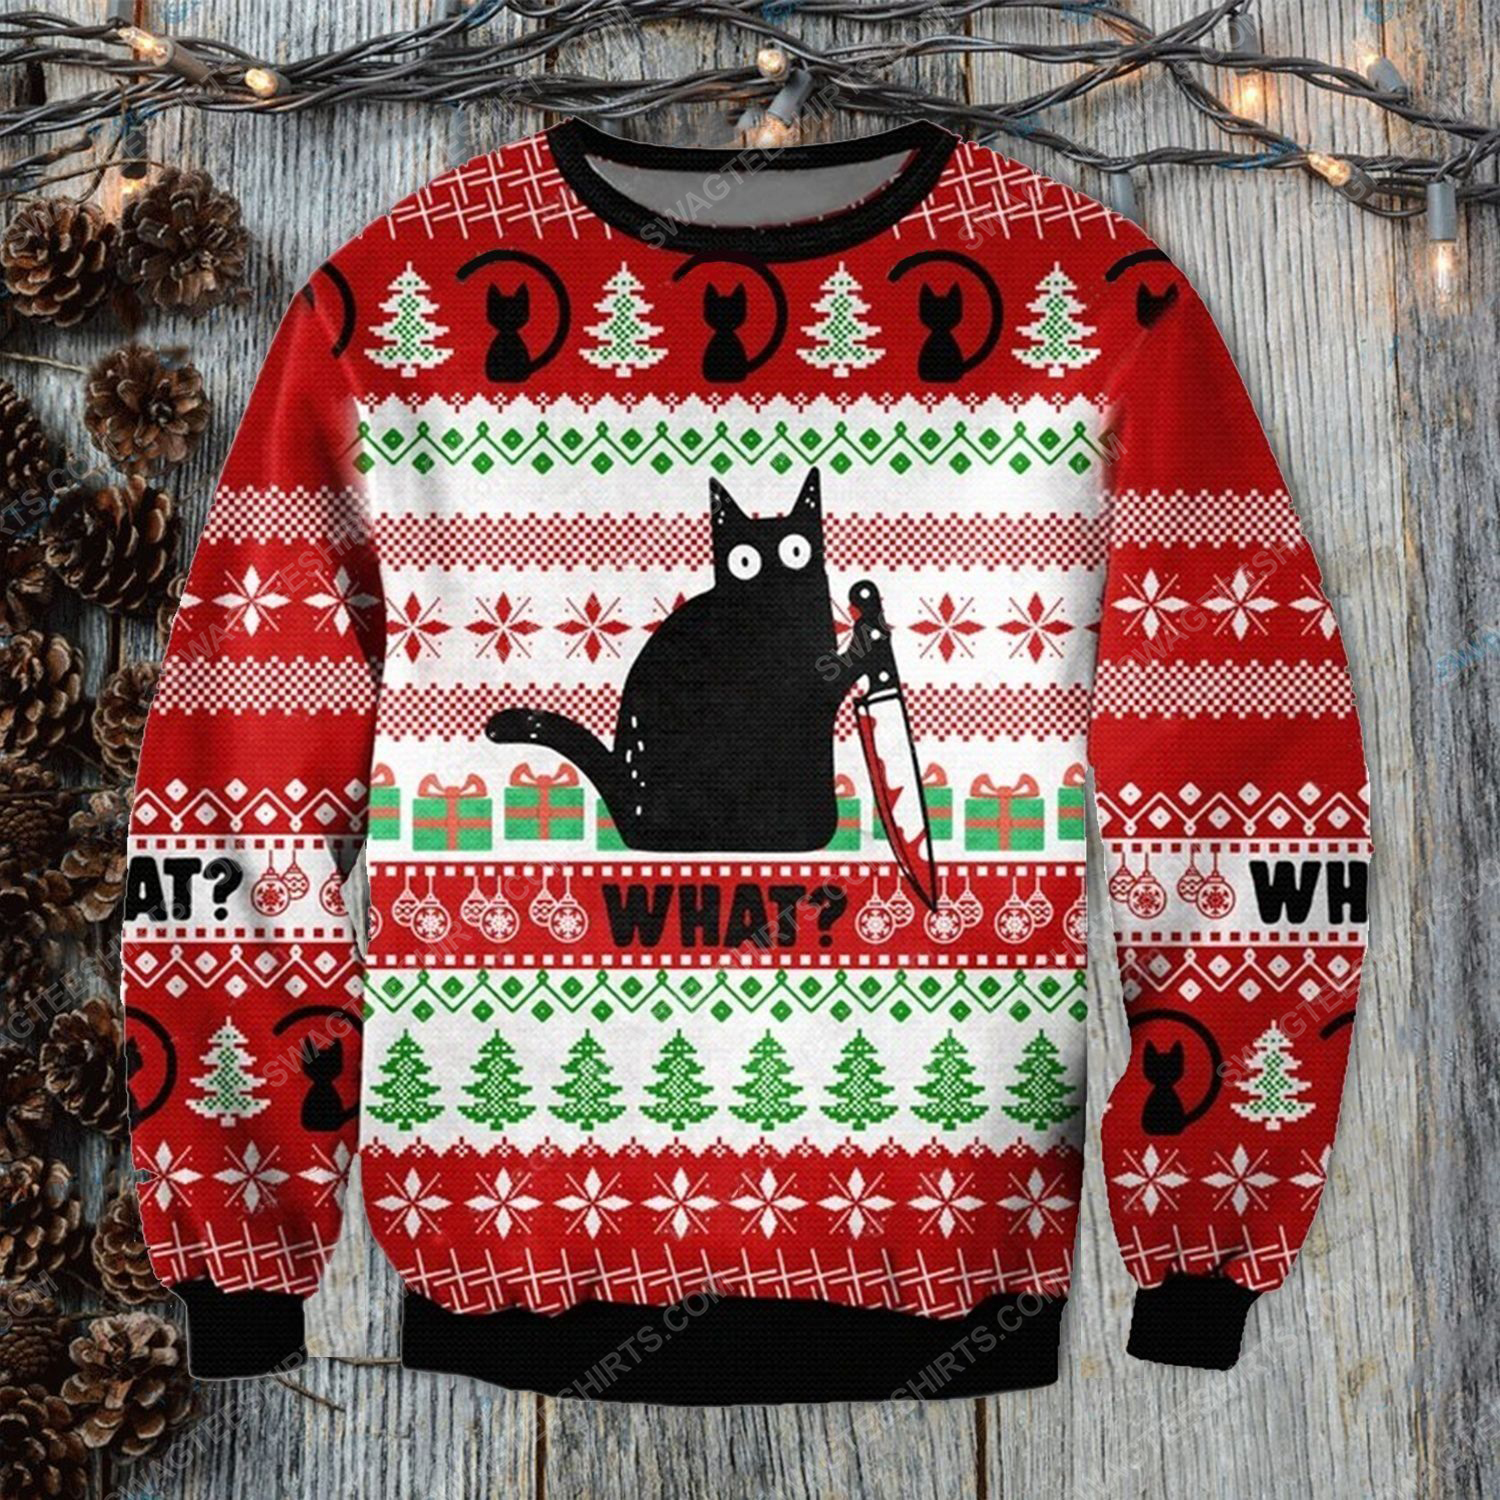 Murderous black cat with knife ugly christmas sweater - Copy (3)